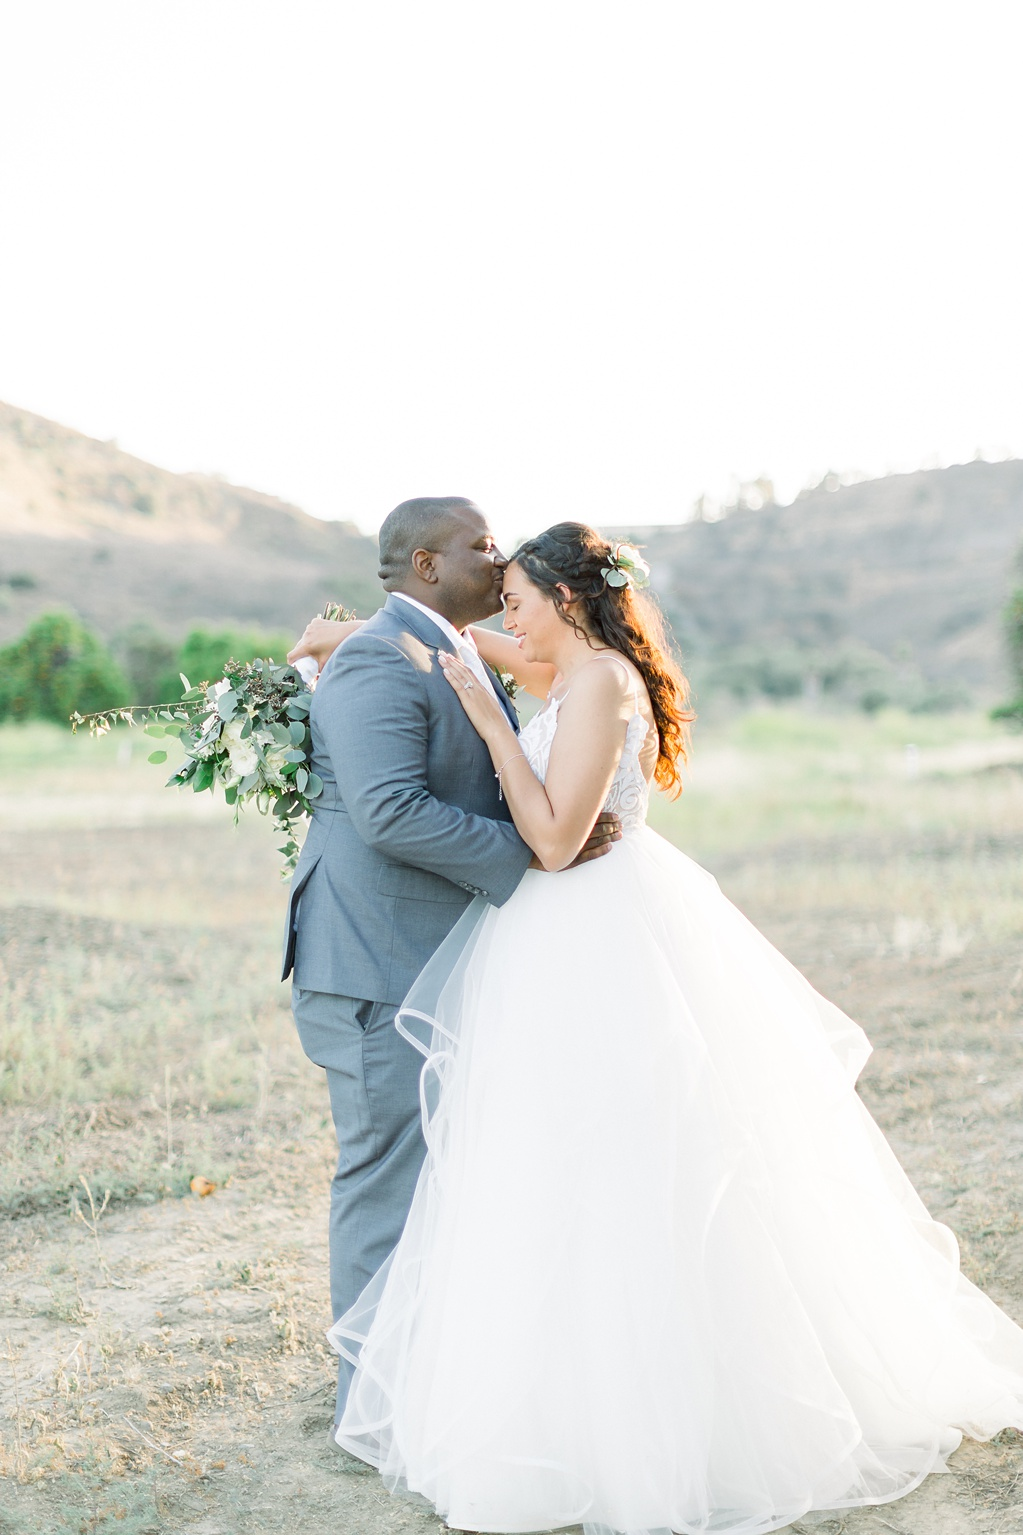 An Organic Floral Inspired Summer Wedding in the open fields of Hamilton Oaks, San Juan Capistrano by Wedding Photographer Madison Ellis (50)